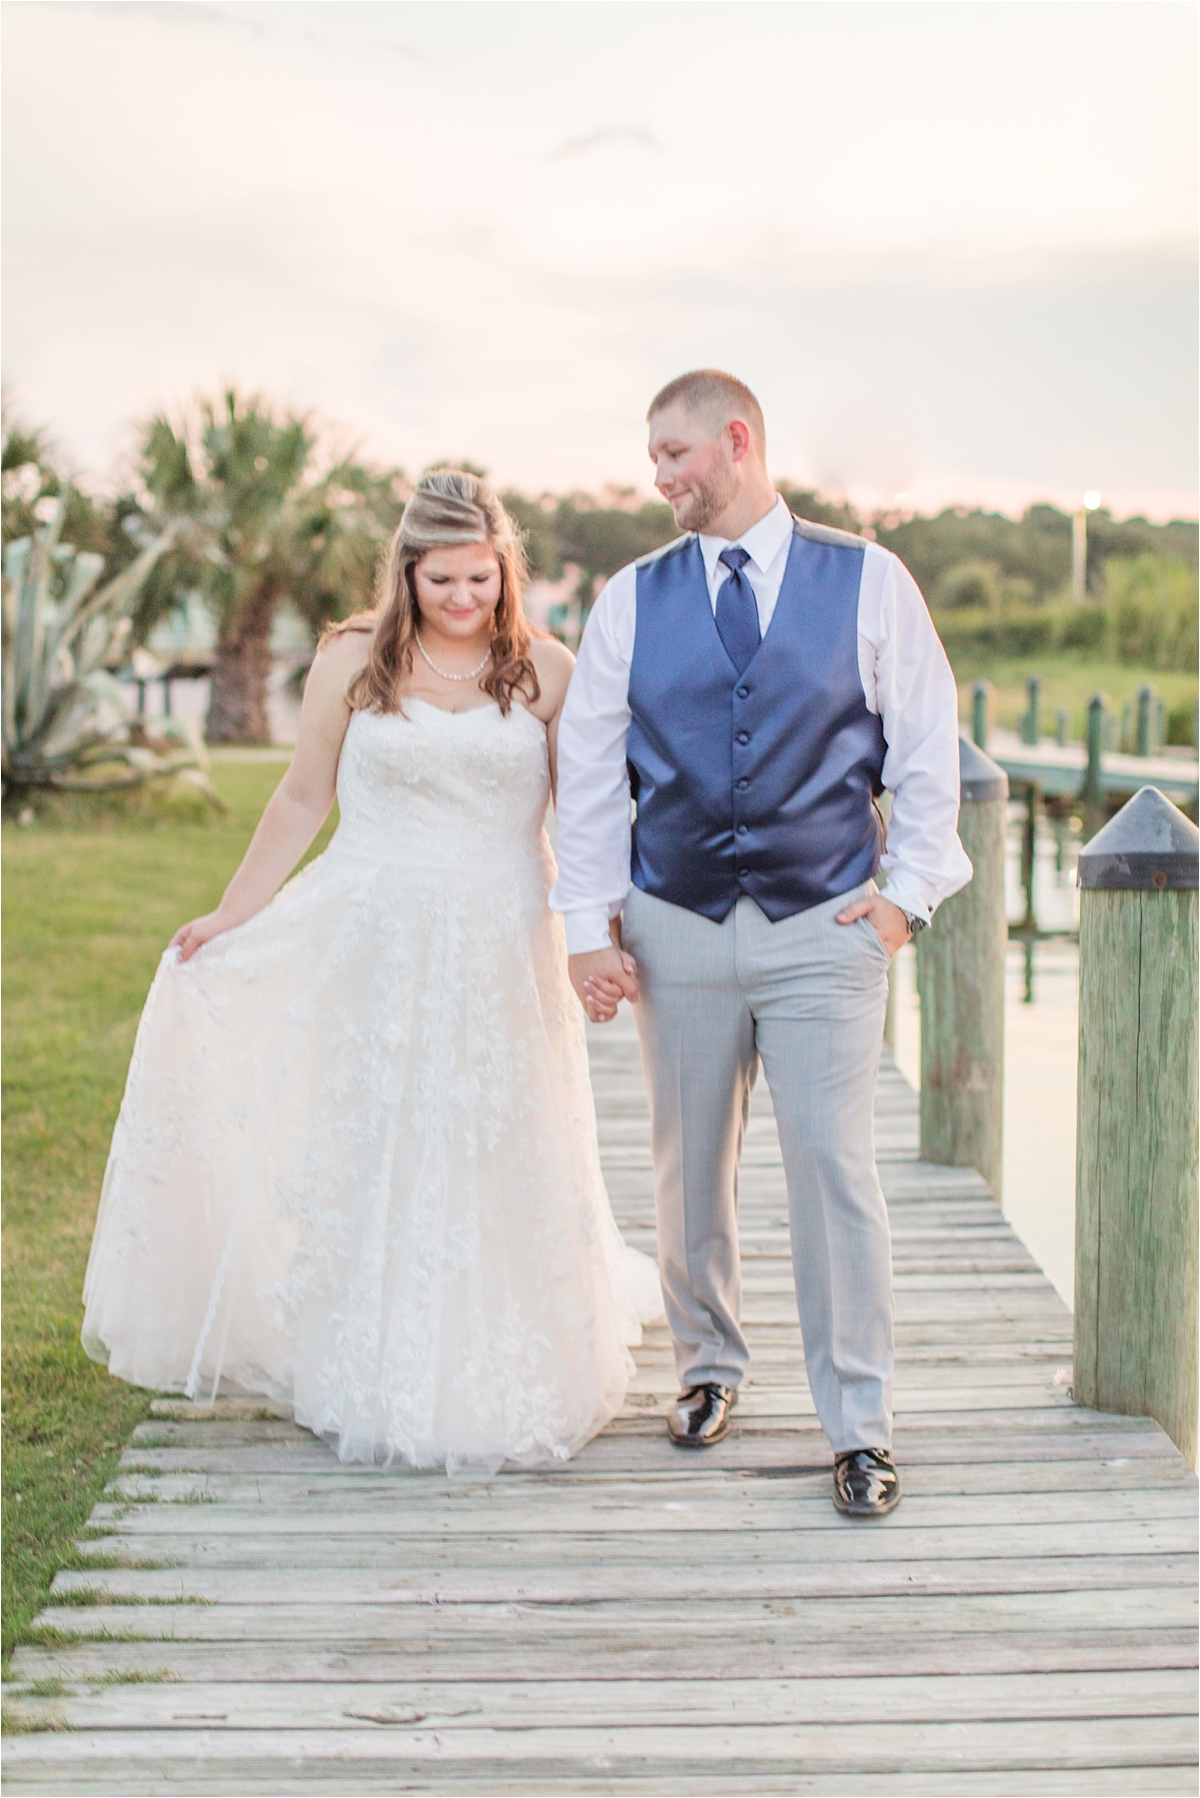 navy-venue-alabama-wedding-photographer-Dauphin Island Estuarium-on the beach-beach-bride-groom-portraits